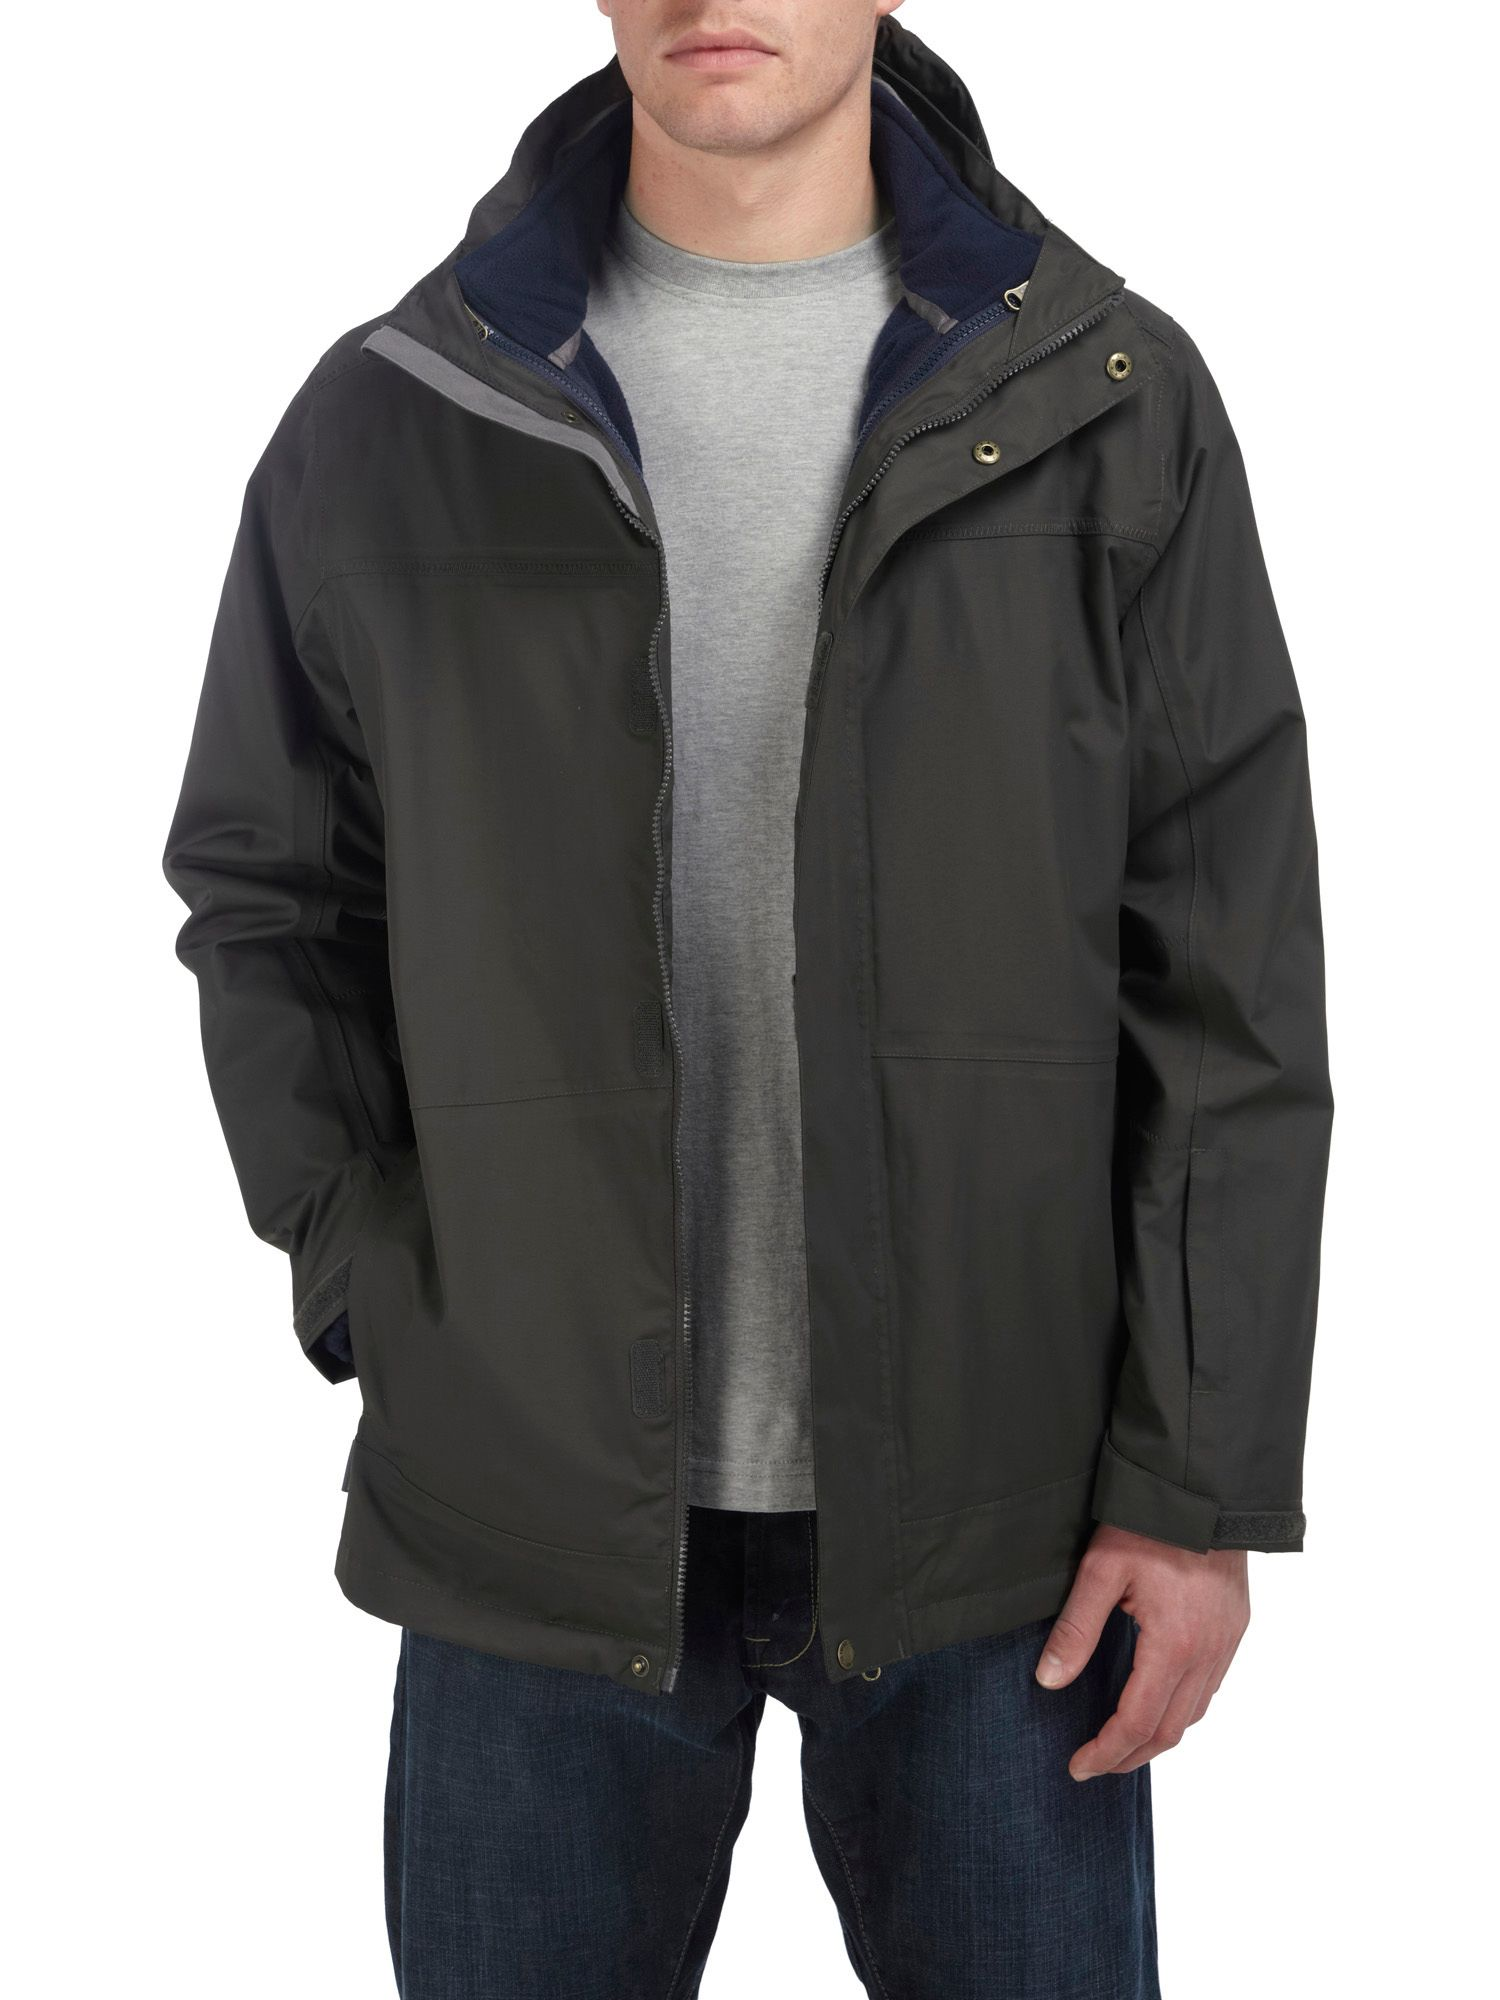 Crown 3in1 milatex hooded jacket